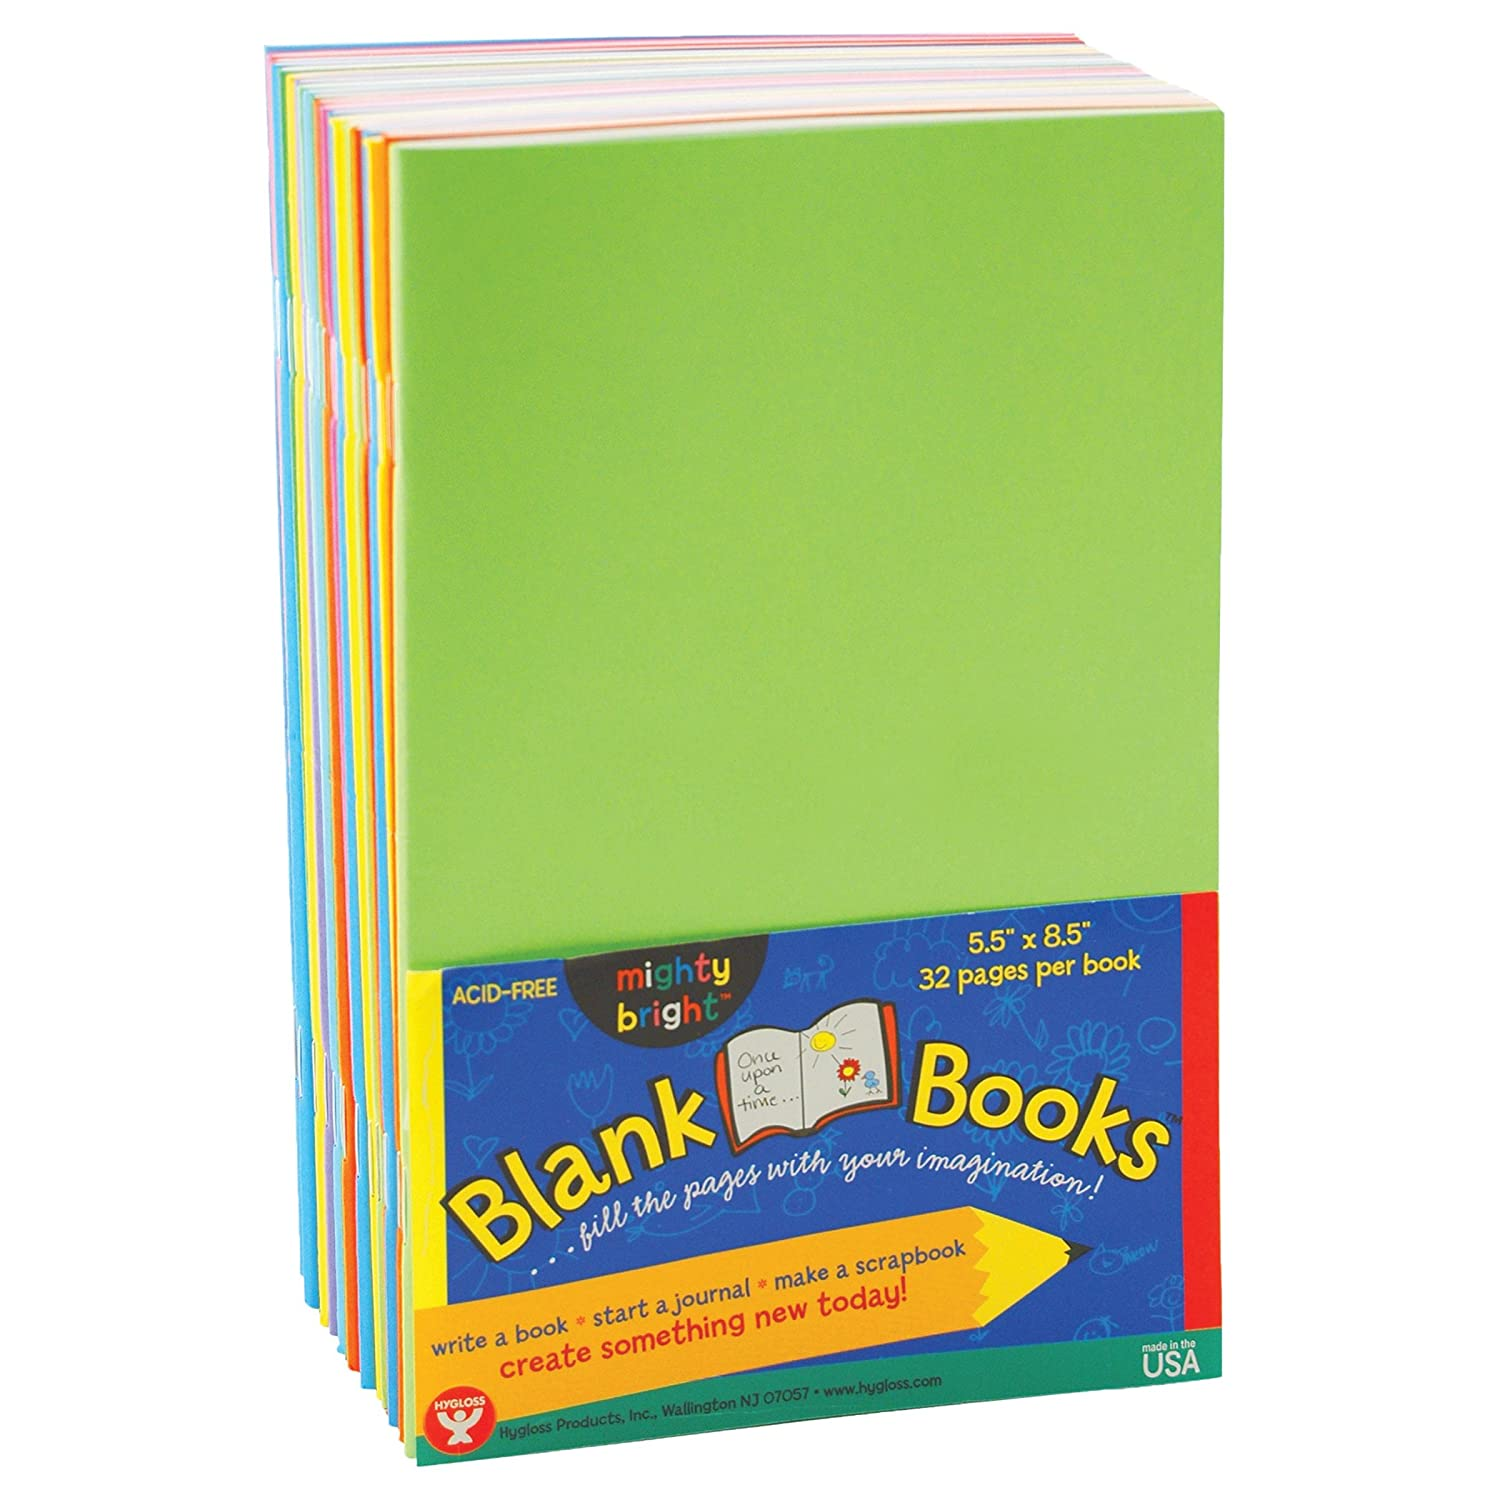 Hygloss Products HYG77705BN Mighty Brights Books 32 PG 5 1/2X8 1/2 10 Bk, Grade 4: